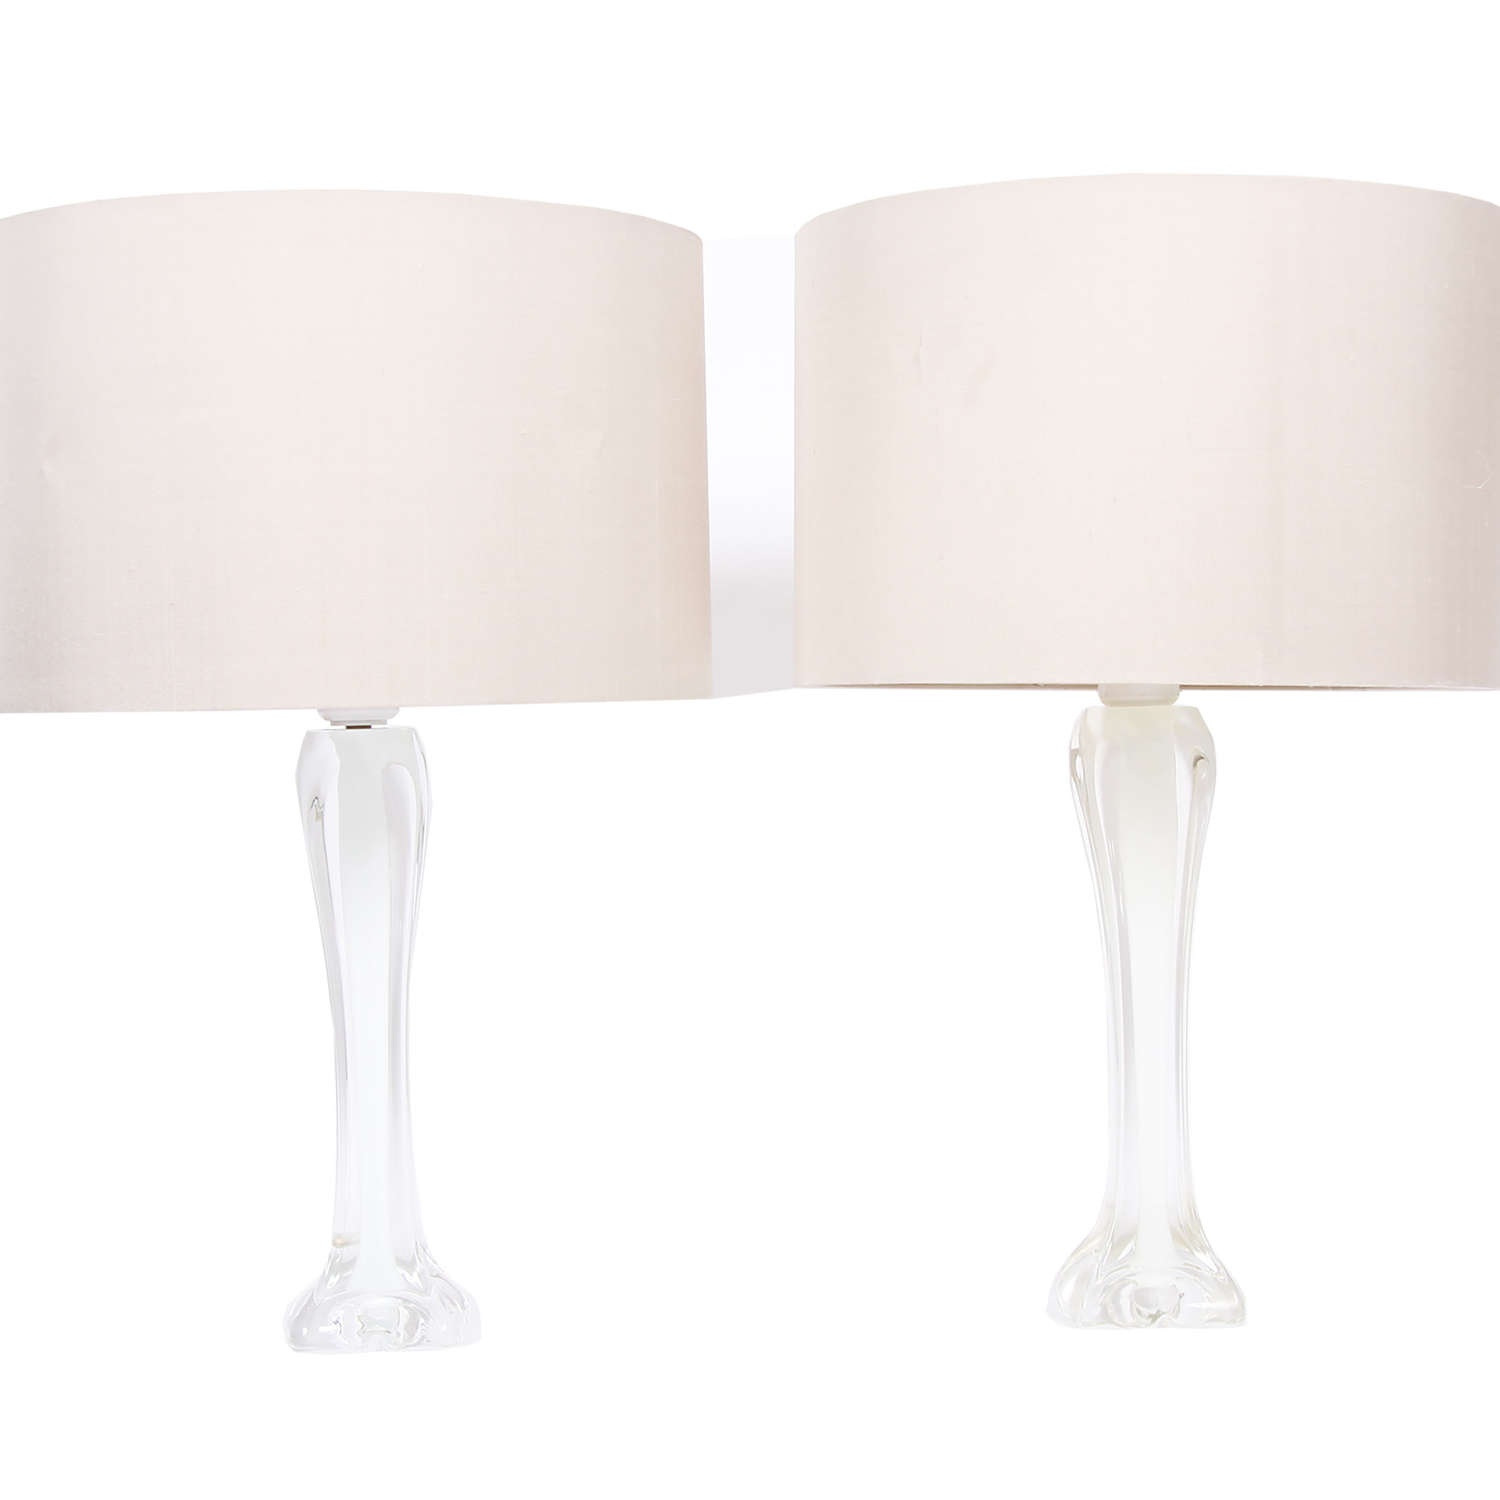 Pair of Swedish White Flygsfors Lamps